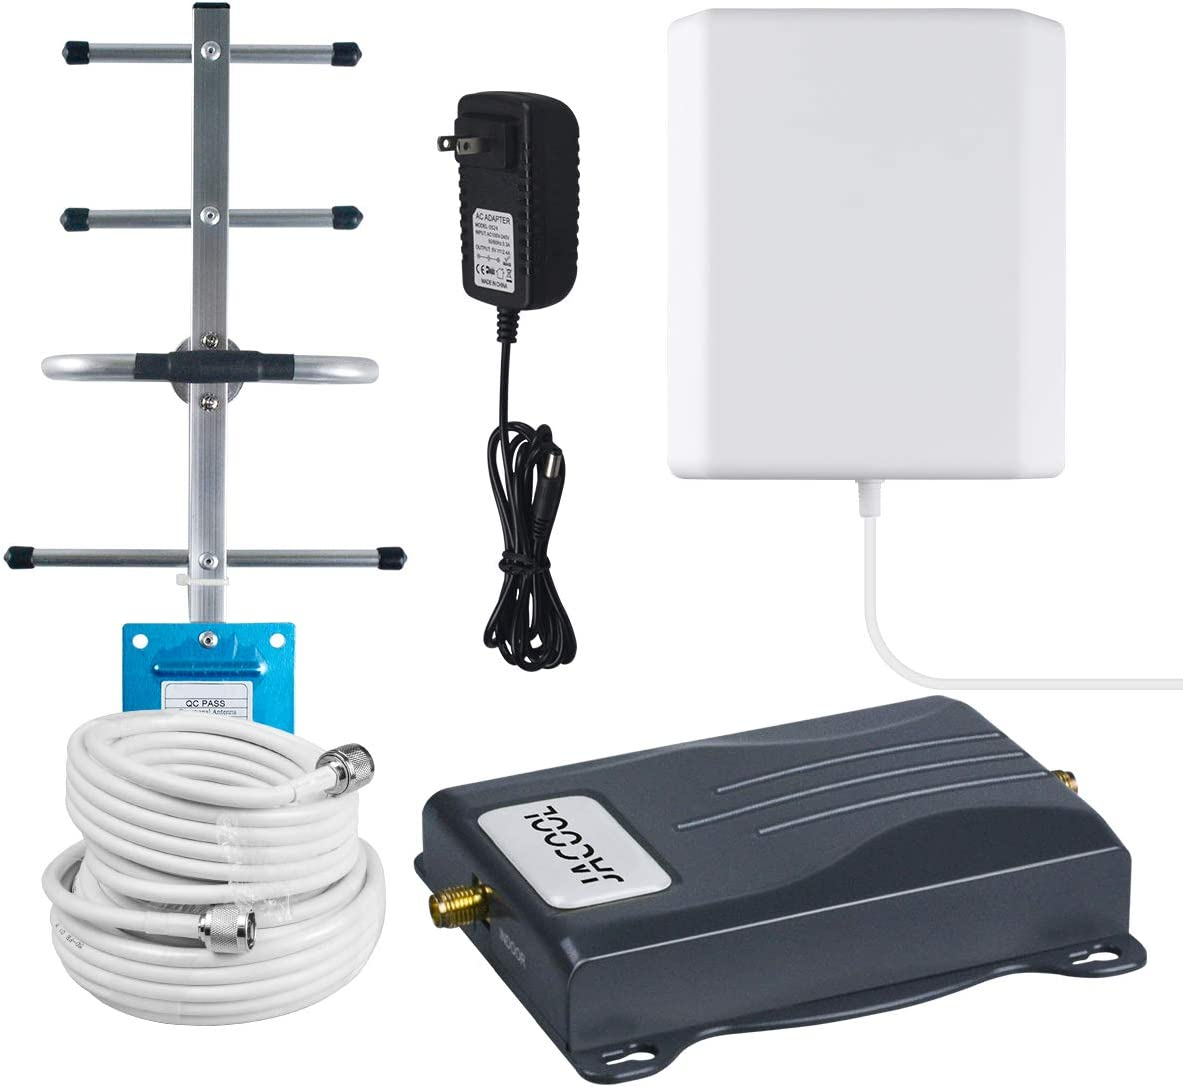 Verizon Signal Booster 4G LTE Cell Phone Signal Booster 700MHz Band 13 Mobile Signal Booster Amplifier 65dB Verizon Cell Phone Repeater for Home Use Boost Cellular Signal for Remote Area